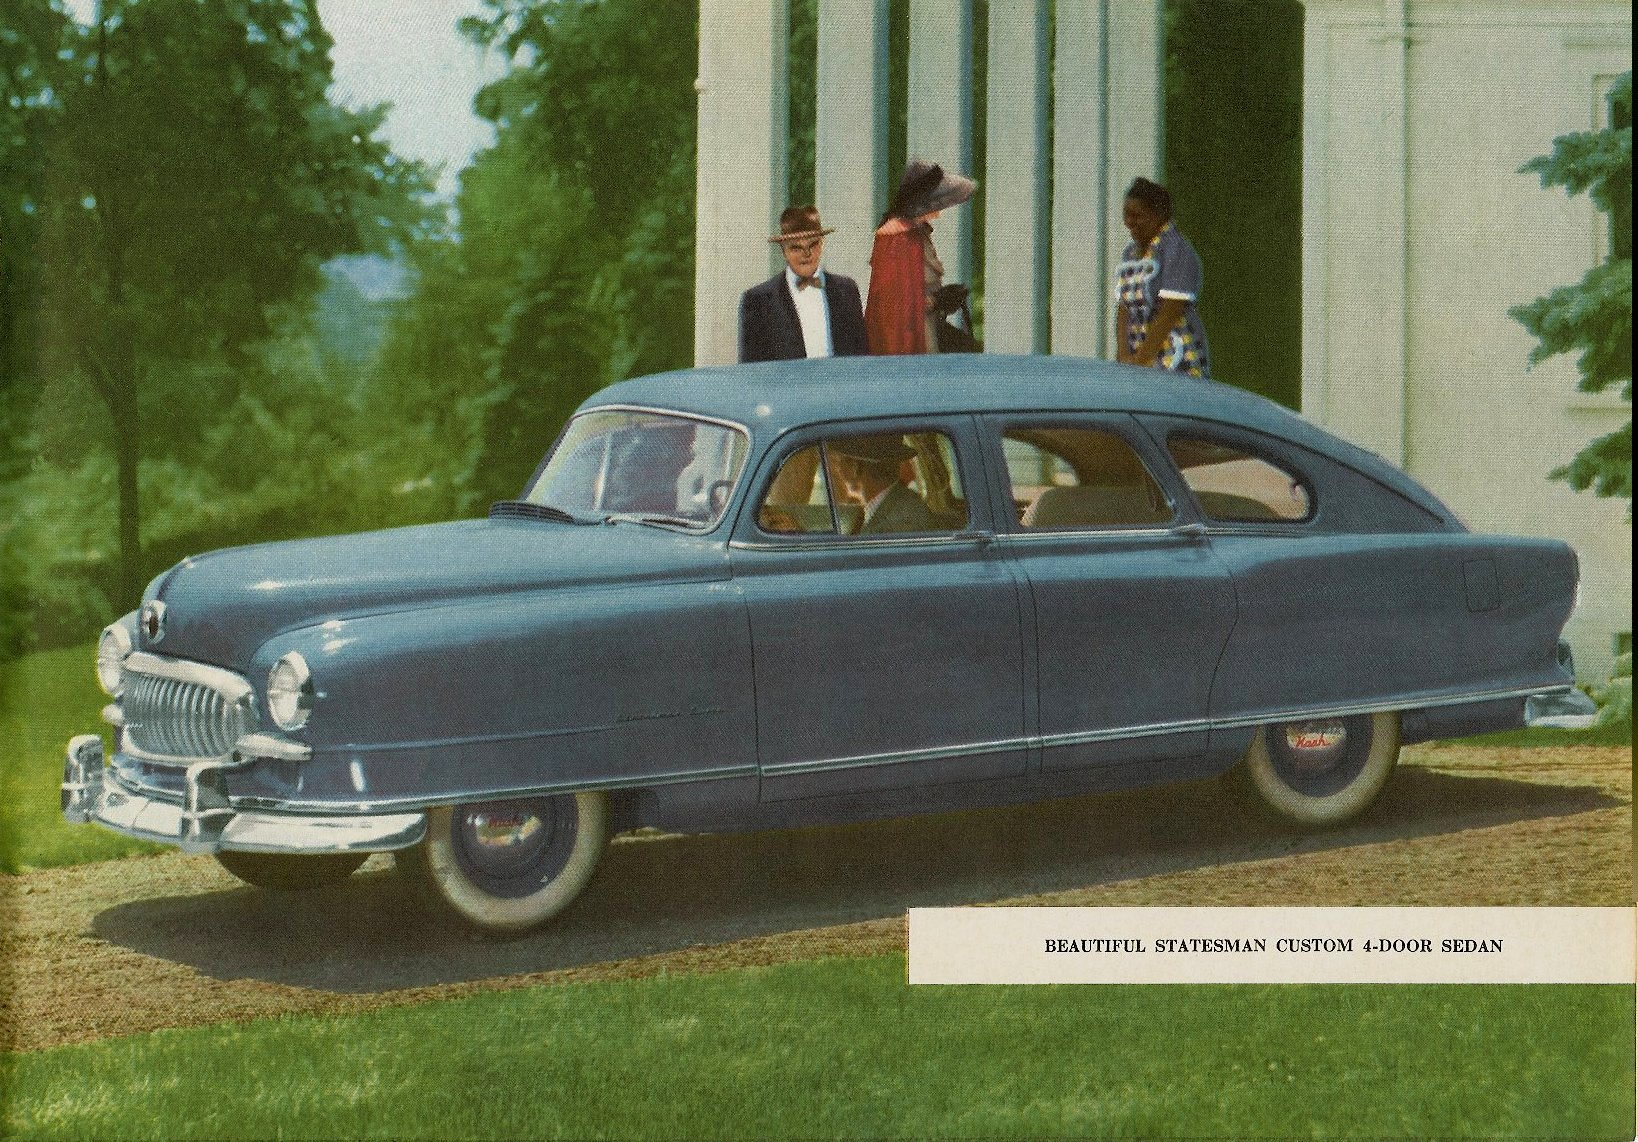 1951 NASH The New NASH Airflytes Sales Catalog NSP51-783-400M – October 1, 1951 Page 10